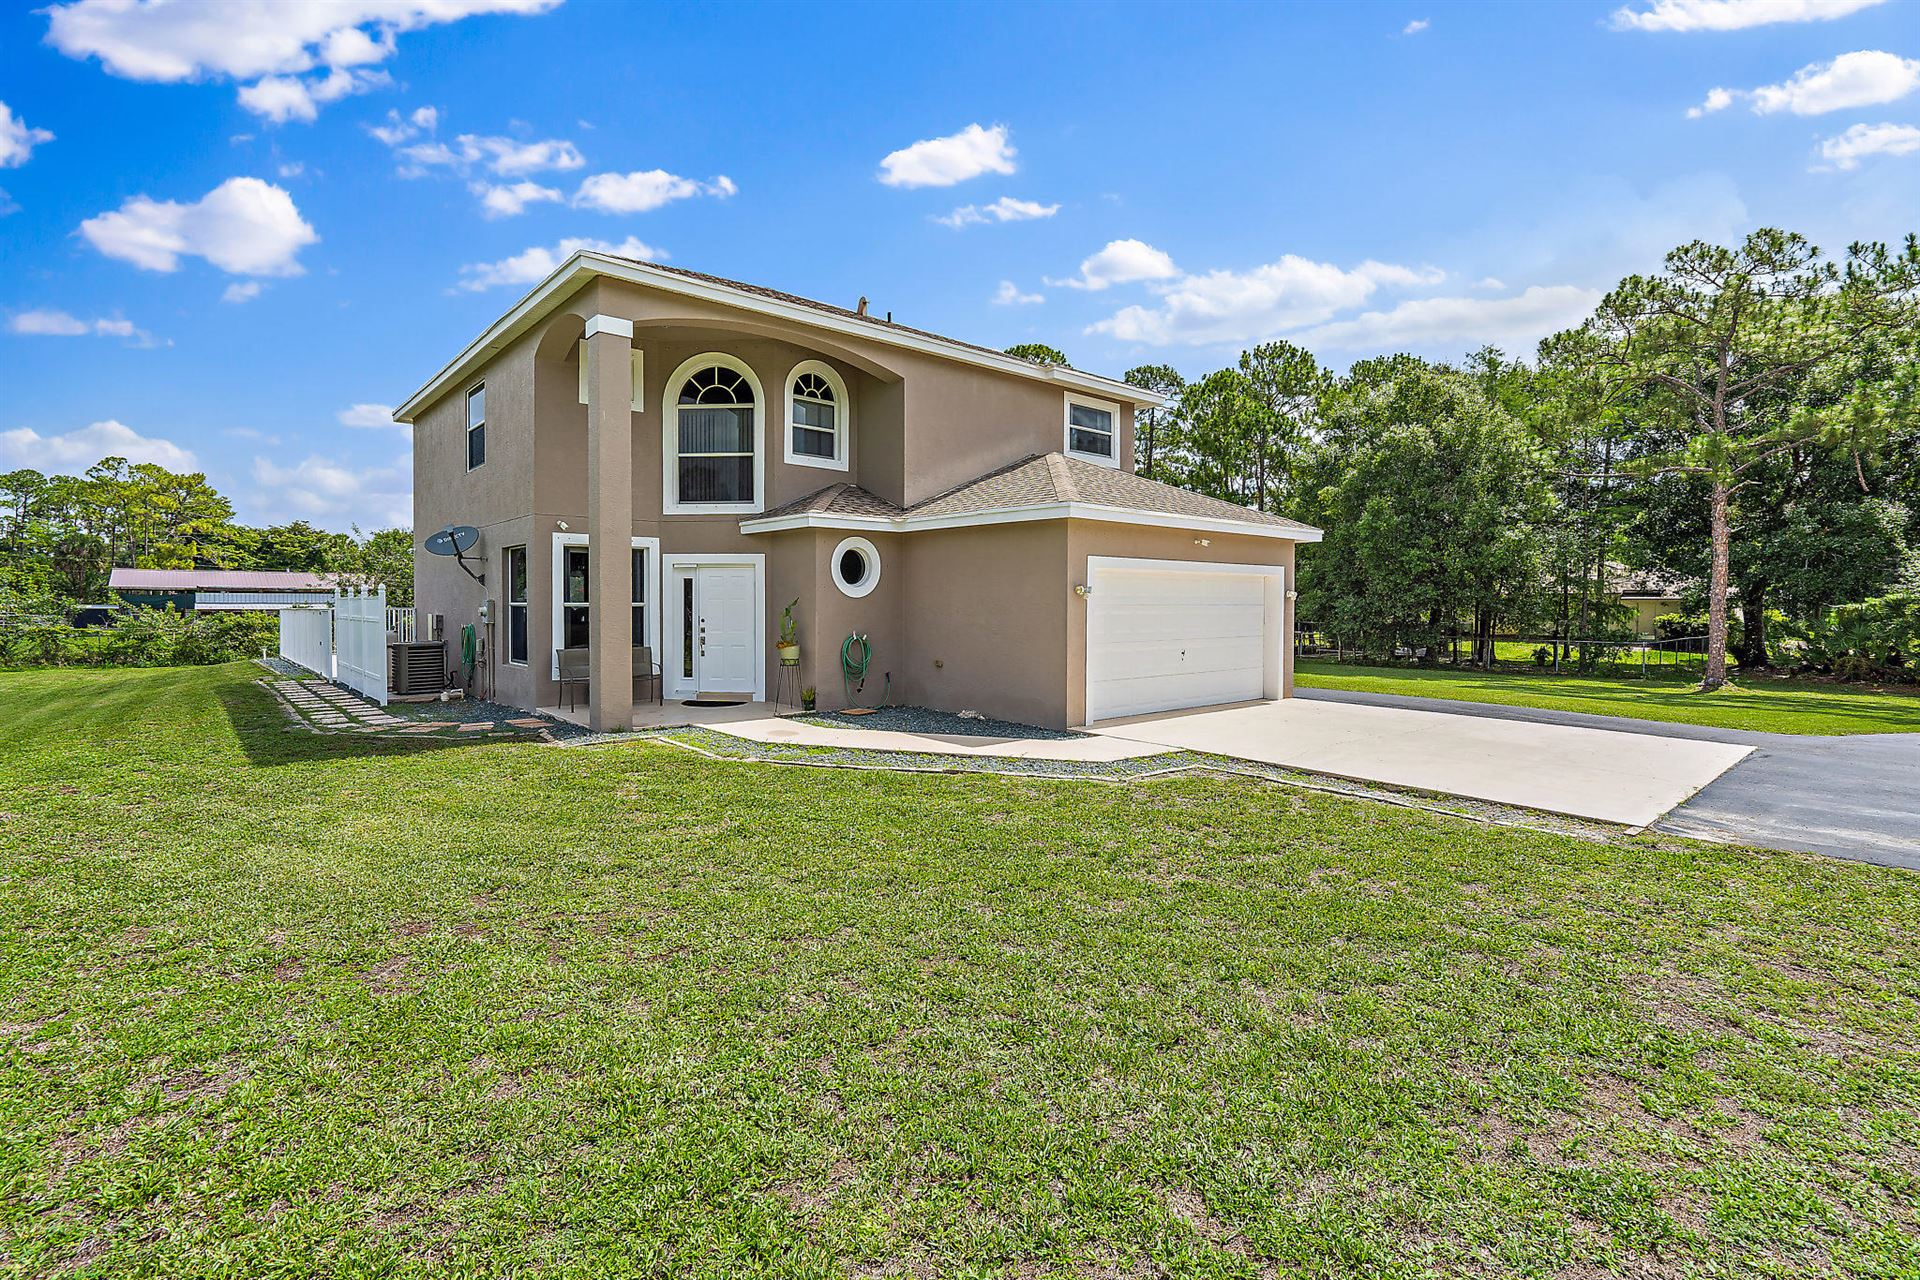 Photo for 17125 35th Place N, Loxahatchee, FL 33470 (MLS # RX-10624842)